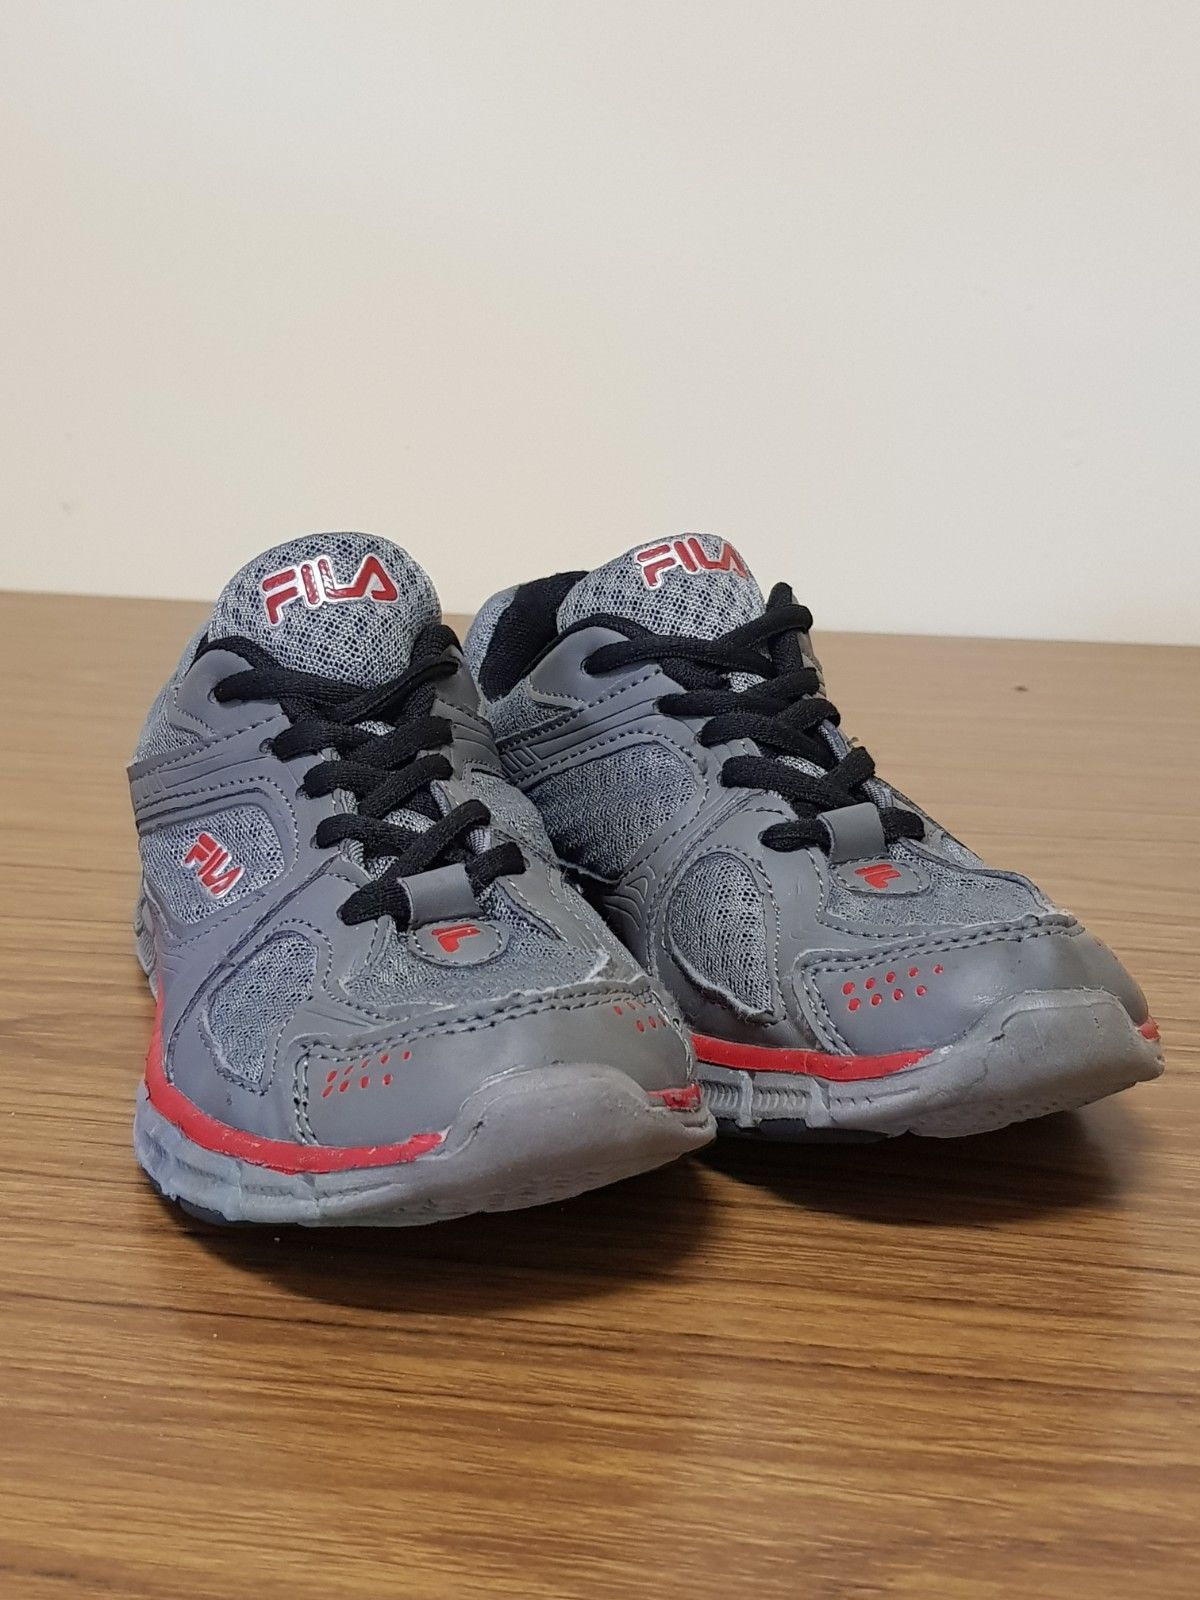 c292bf8048a1 FILA Boys Shoes Size US 4   UK 3   EUR 36 (Grey   Red) USED Good Condition